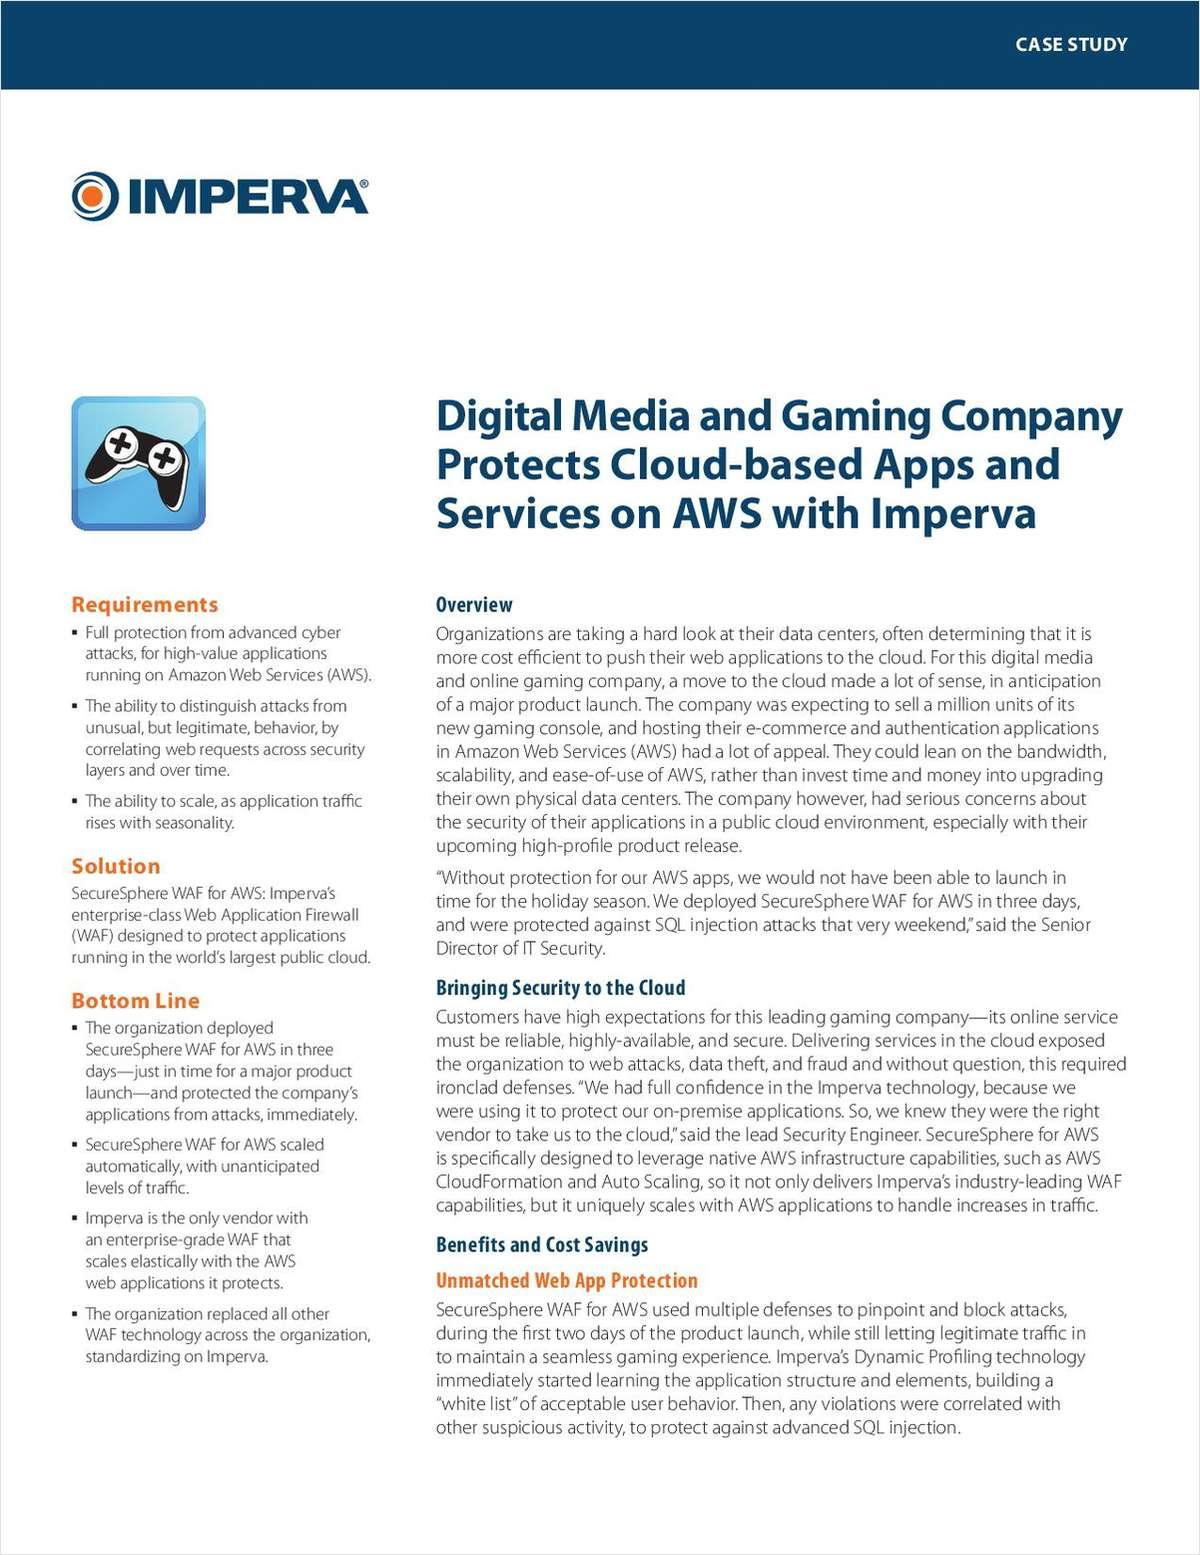 Digital Media and Gaming Company Protects Cloud-based Apps and Services on AWS